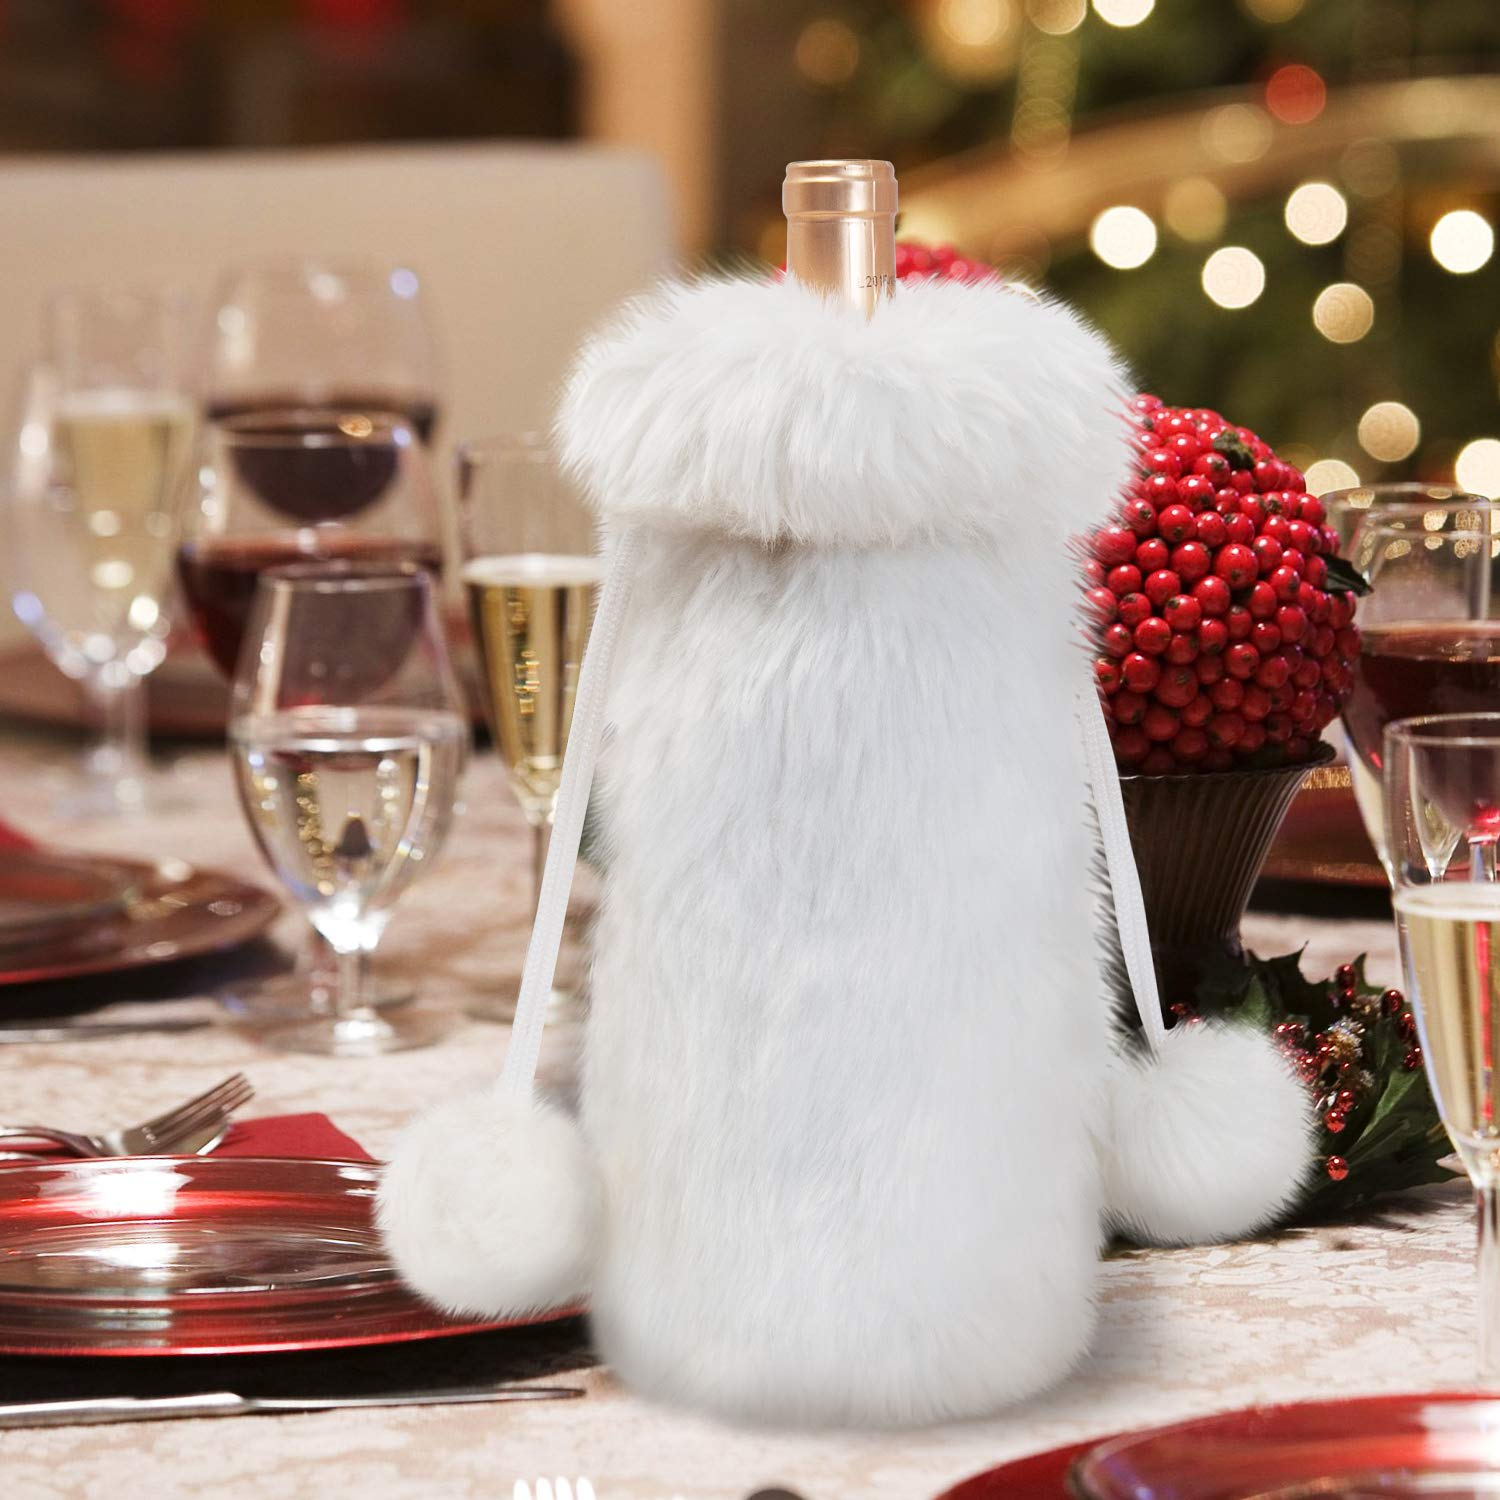 Amazon.com   GMOEGEFT White Luxury Faux Fur Wine Bag with Drawstring Bottle  Cover for Holiday Party Decorations  Bar Tools   Drinkware 24970ec83b